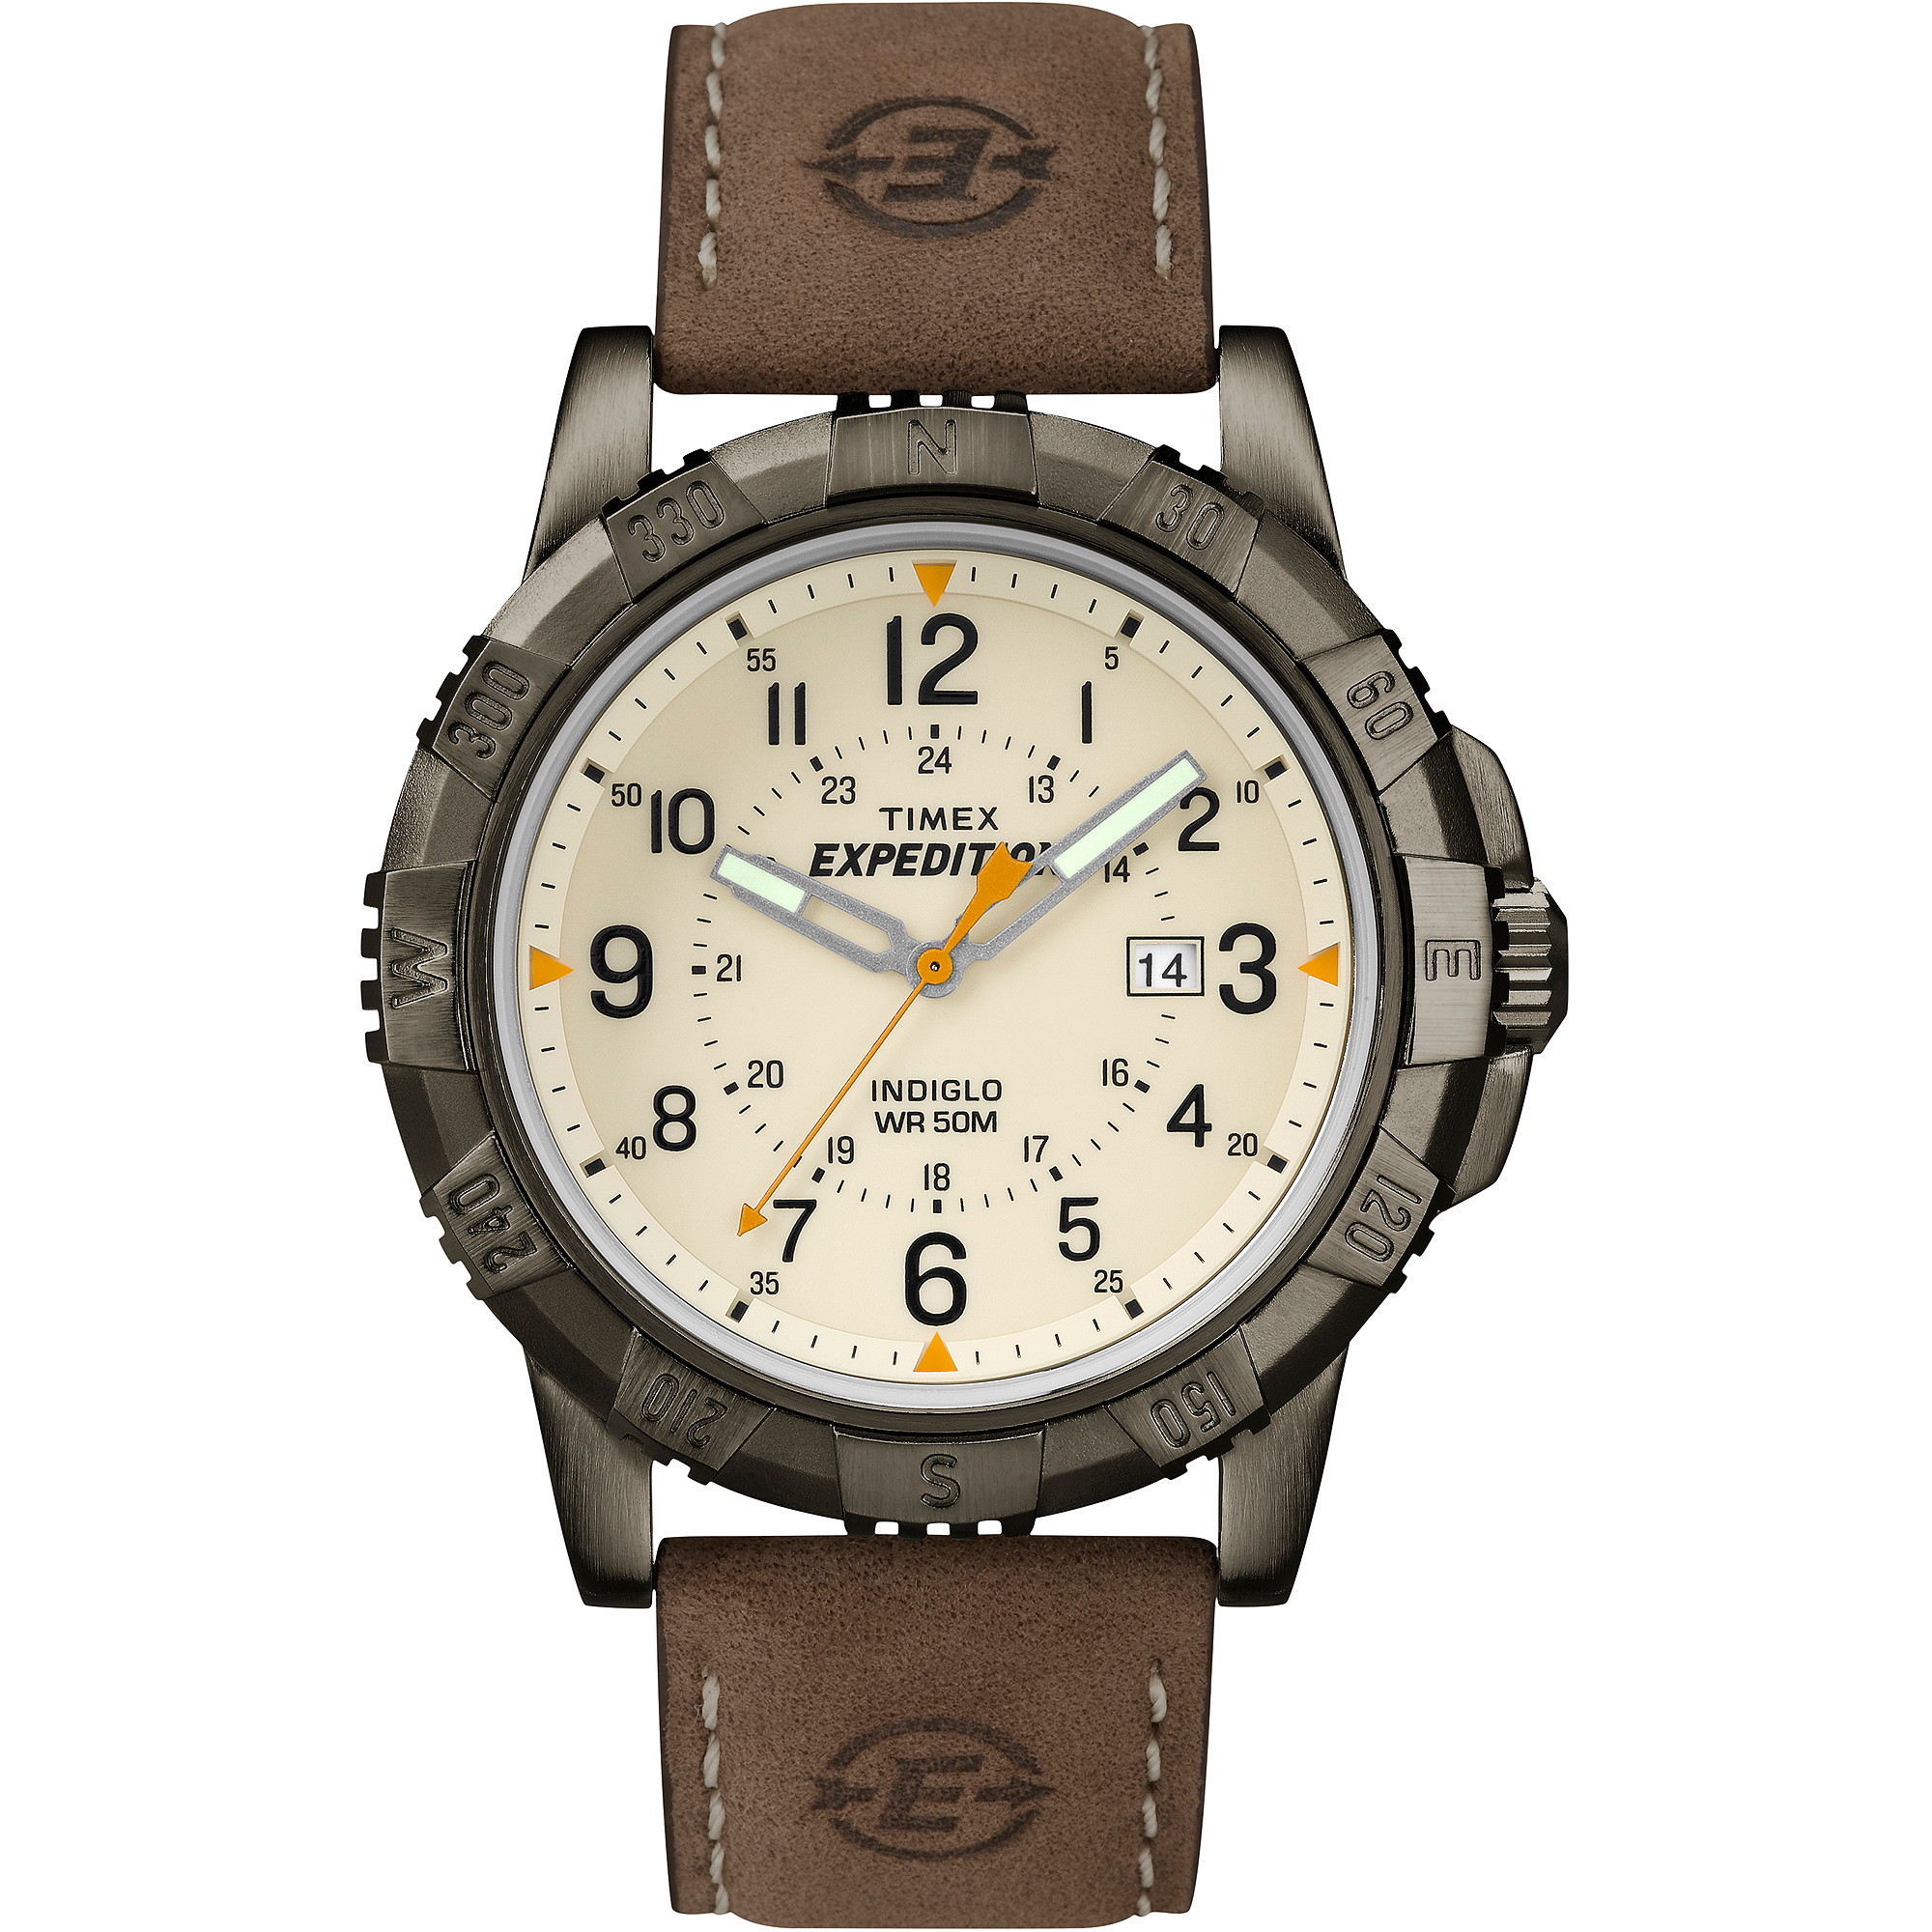 Timex Men's Expedition Rugged Metal Field Watch, Brown Leather Strap by Timex